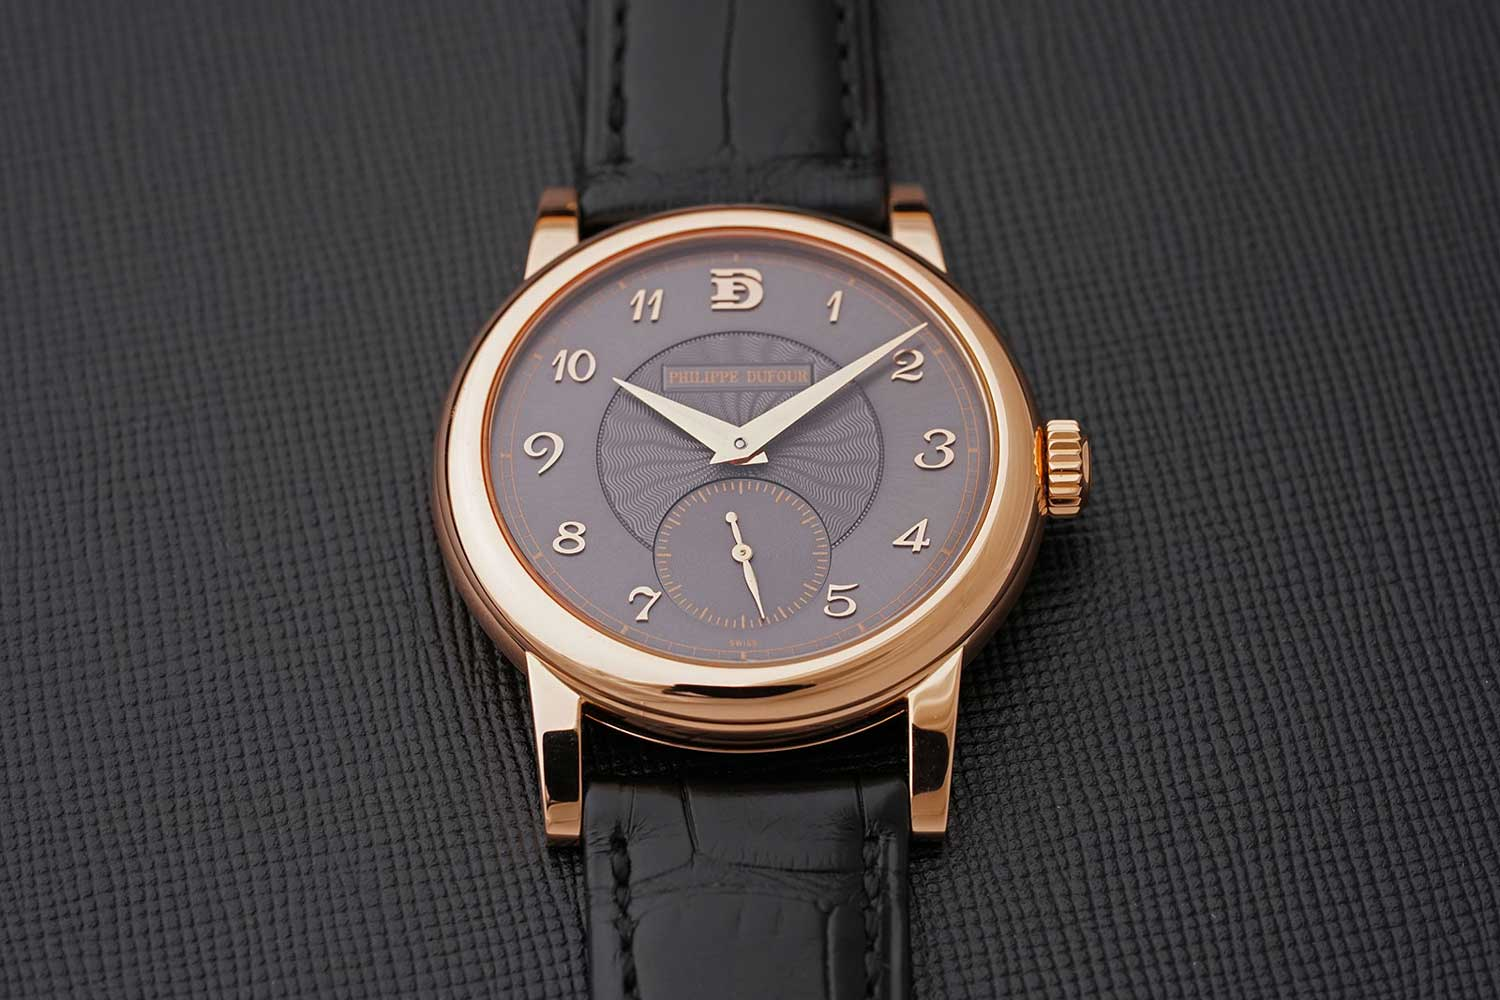 In November, Phillips sold a Philippe Dufour Simplicity Anniversary Edition number 00 in pink gold for USD 1,512,000, the highest price paid for an independent maker at any auction